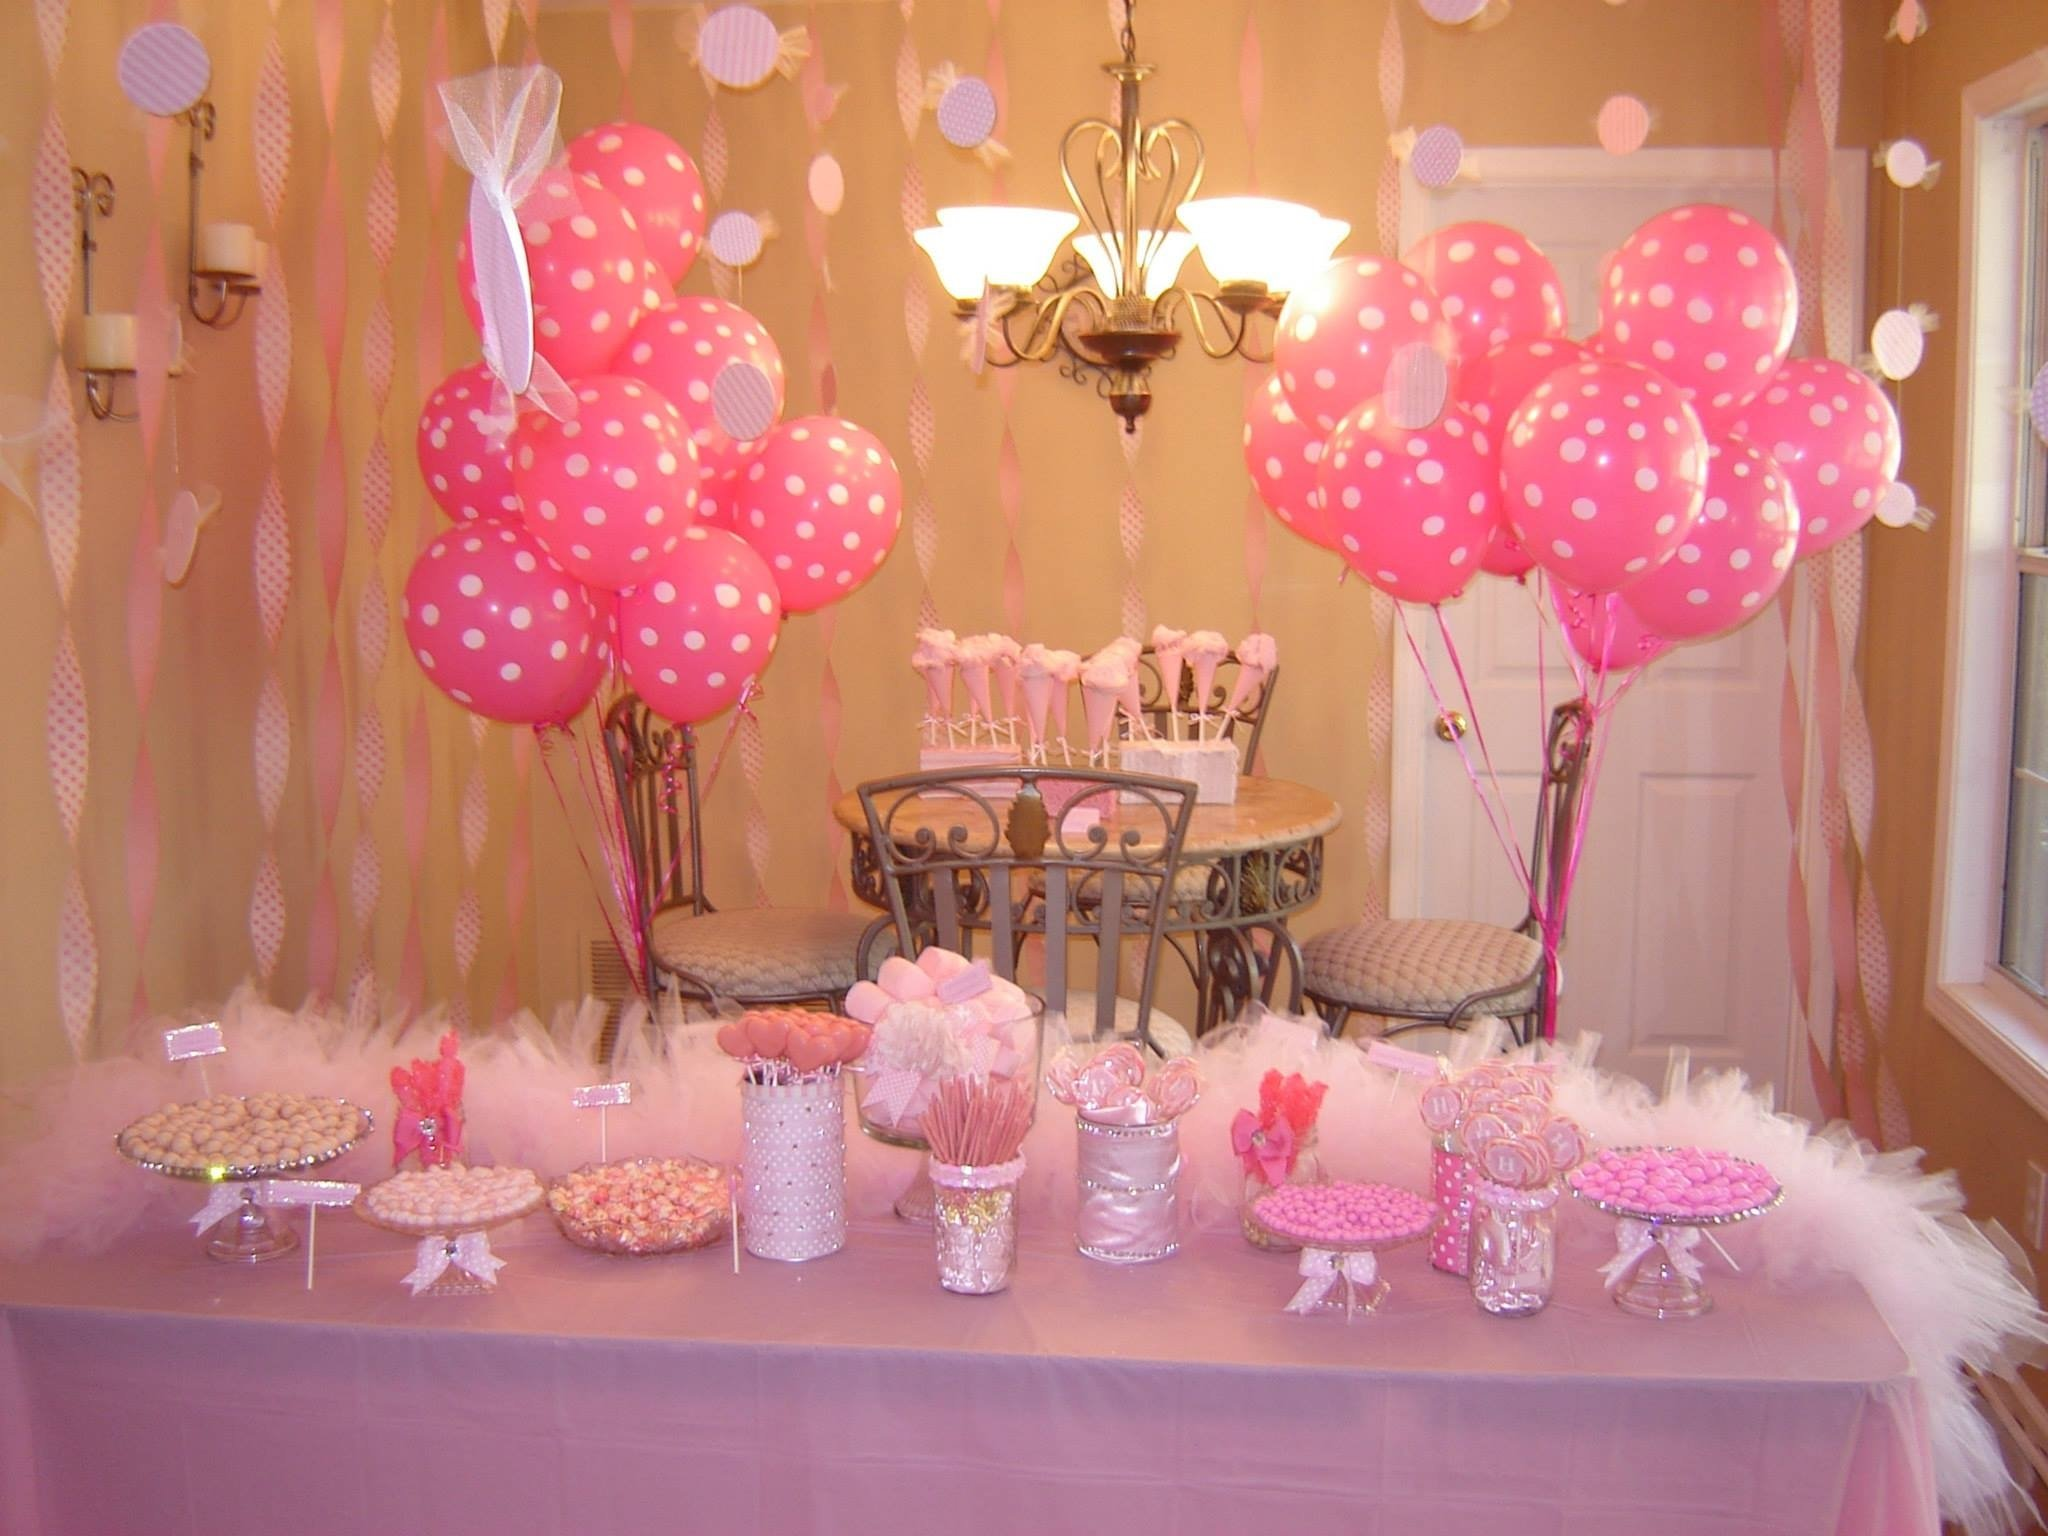 10 Great Party Favor Ideas For 1St Birthday 16 creative ideas for hosting party in small spaces birthdays 1